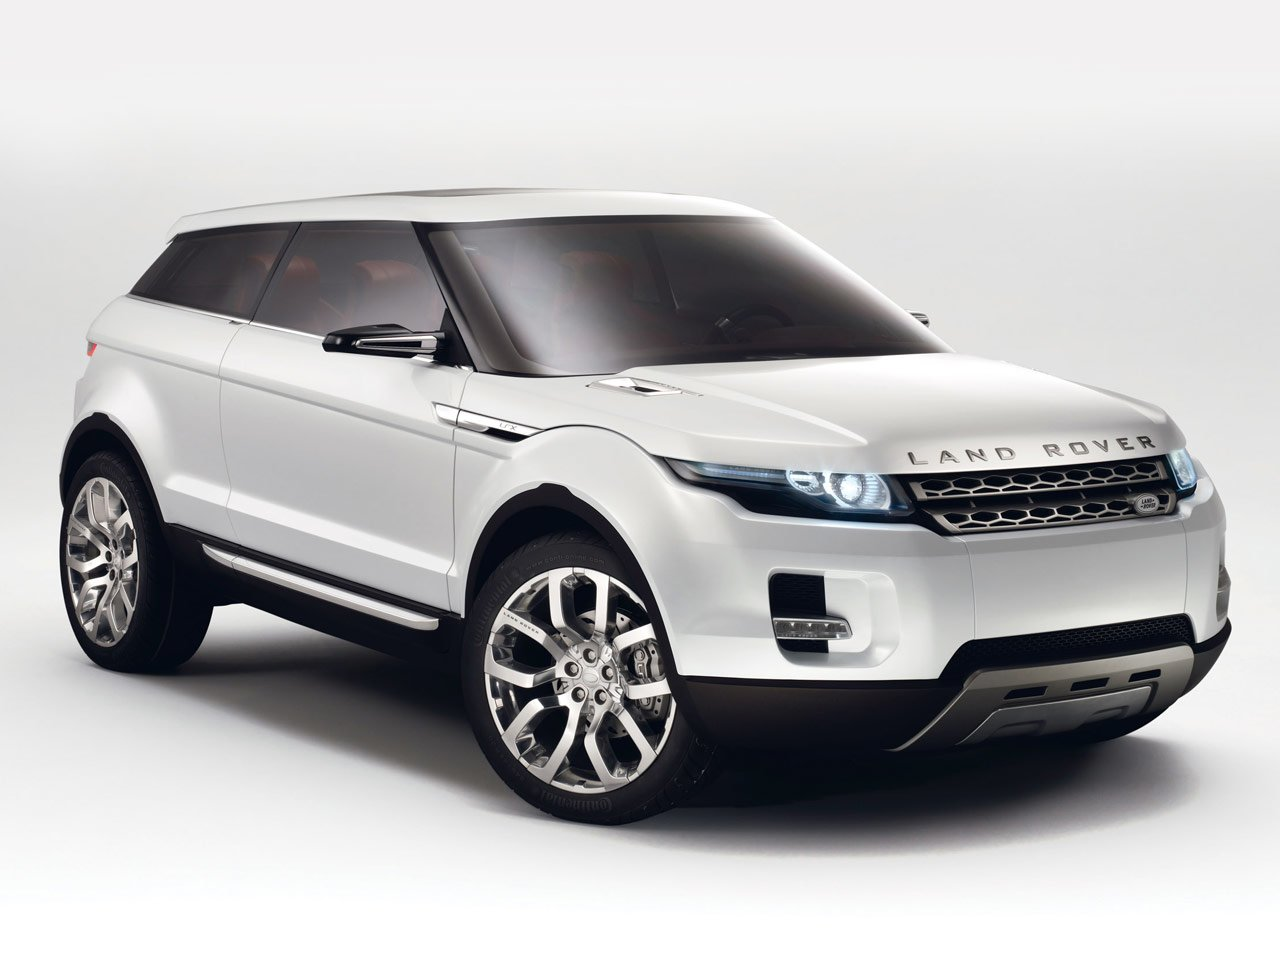 Latest Car New Land Rover Lrx White Concept Best Collection Of Free Download